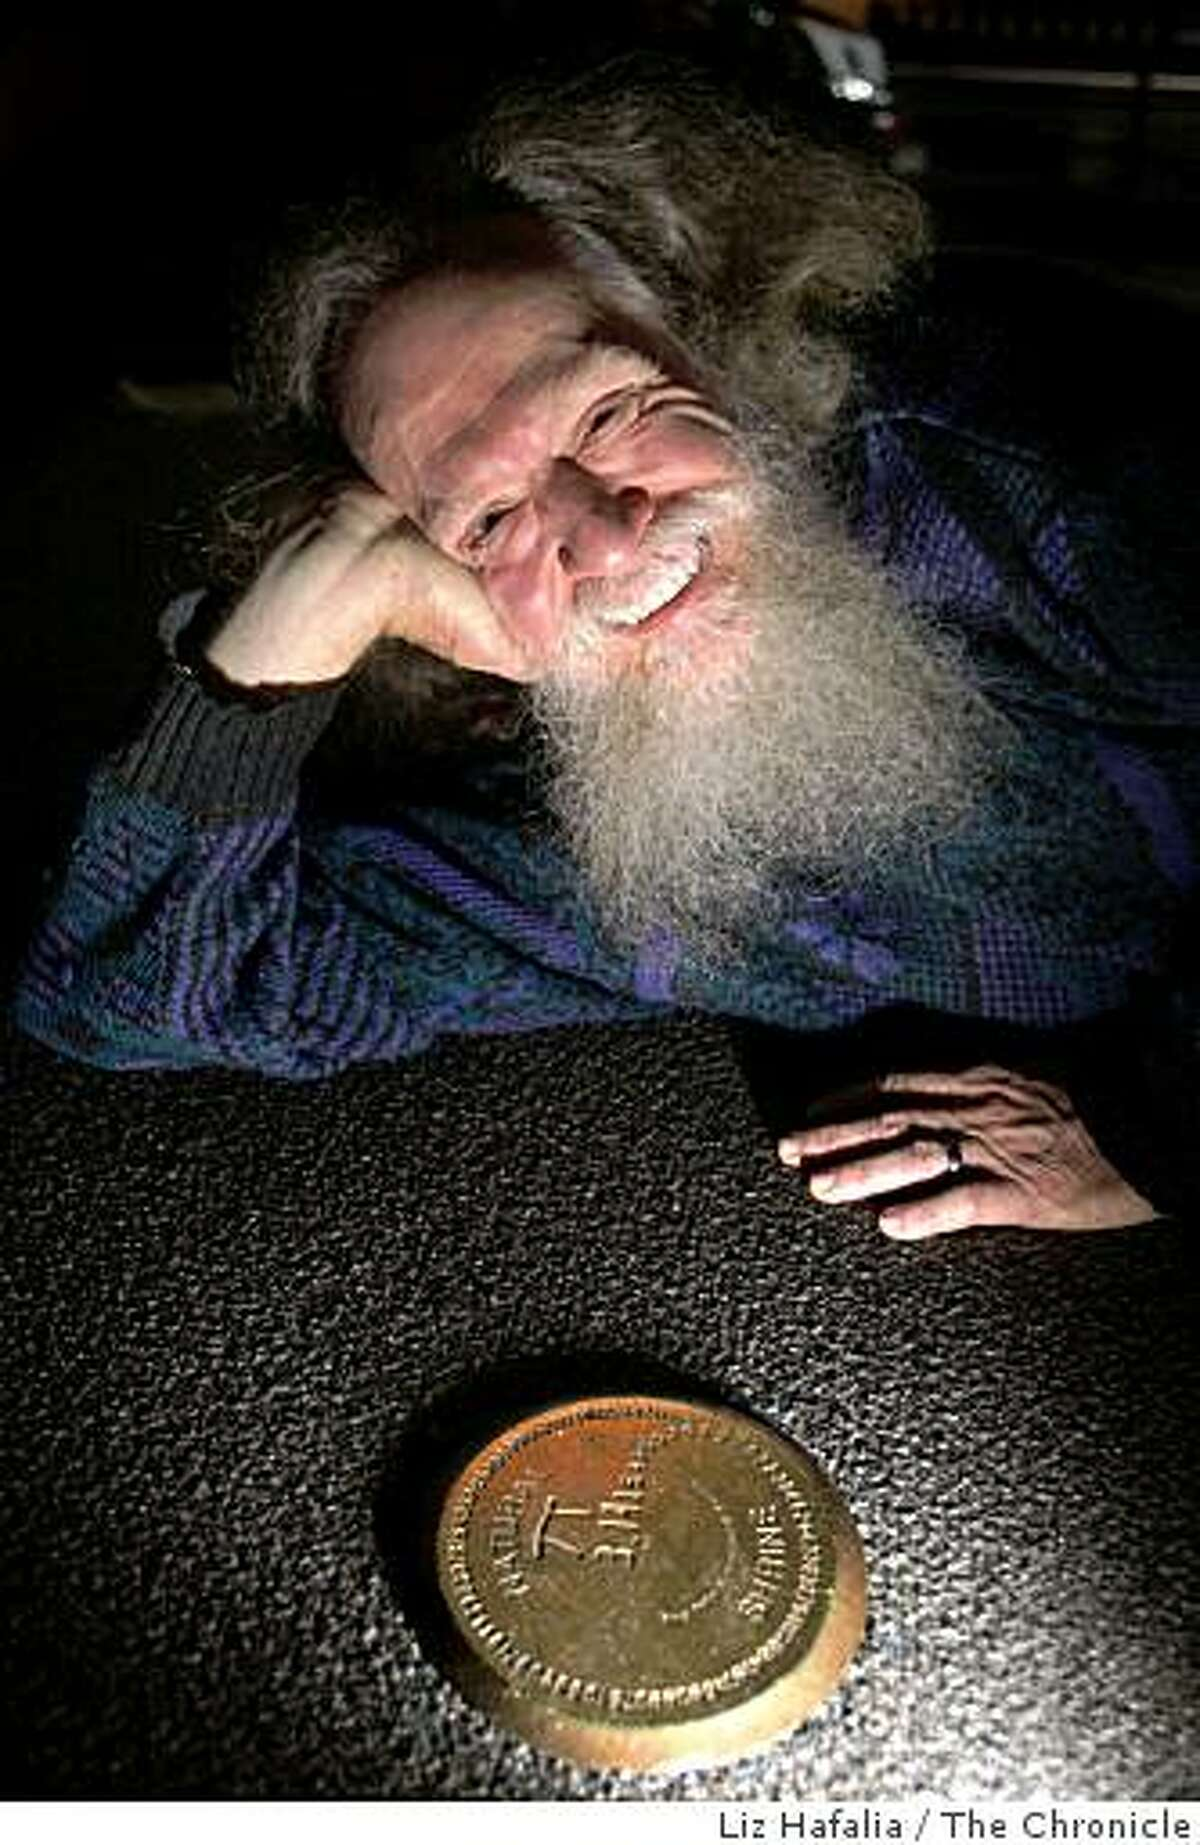 San Francisco physicist Larry Shaw is the co-founder of PiDay, an international celebration in its 21st year, of the mathematical formula that falls on 3.14. He is by the emblem in honor of PiDay at the Exploratorium in San Francisco Calif., on Monday, March 9, 2009.